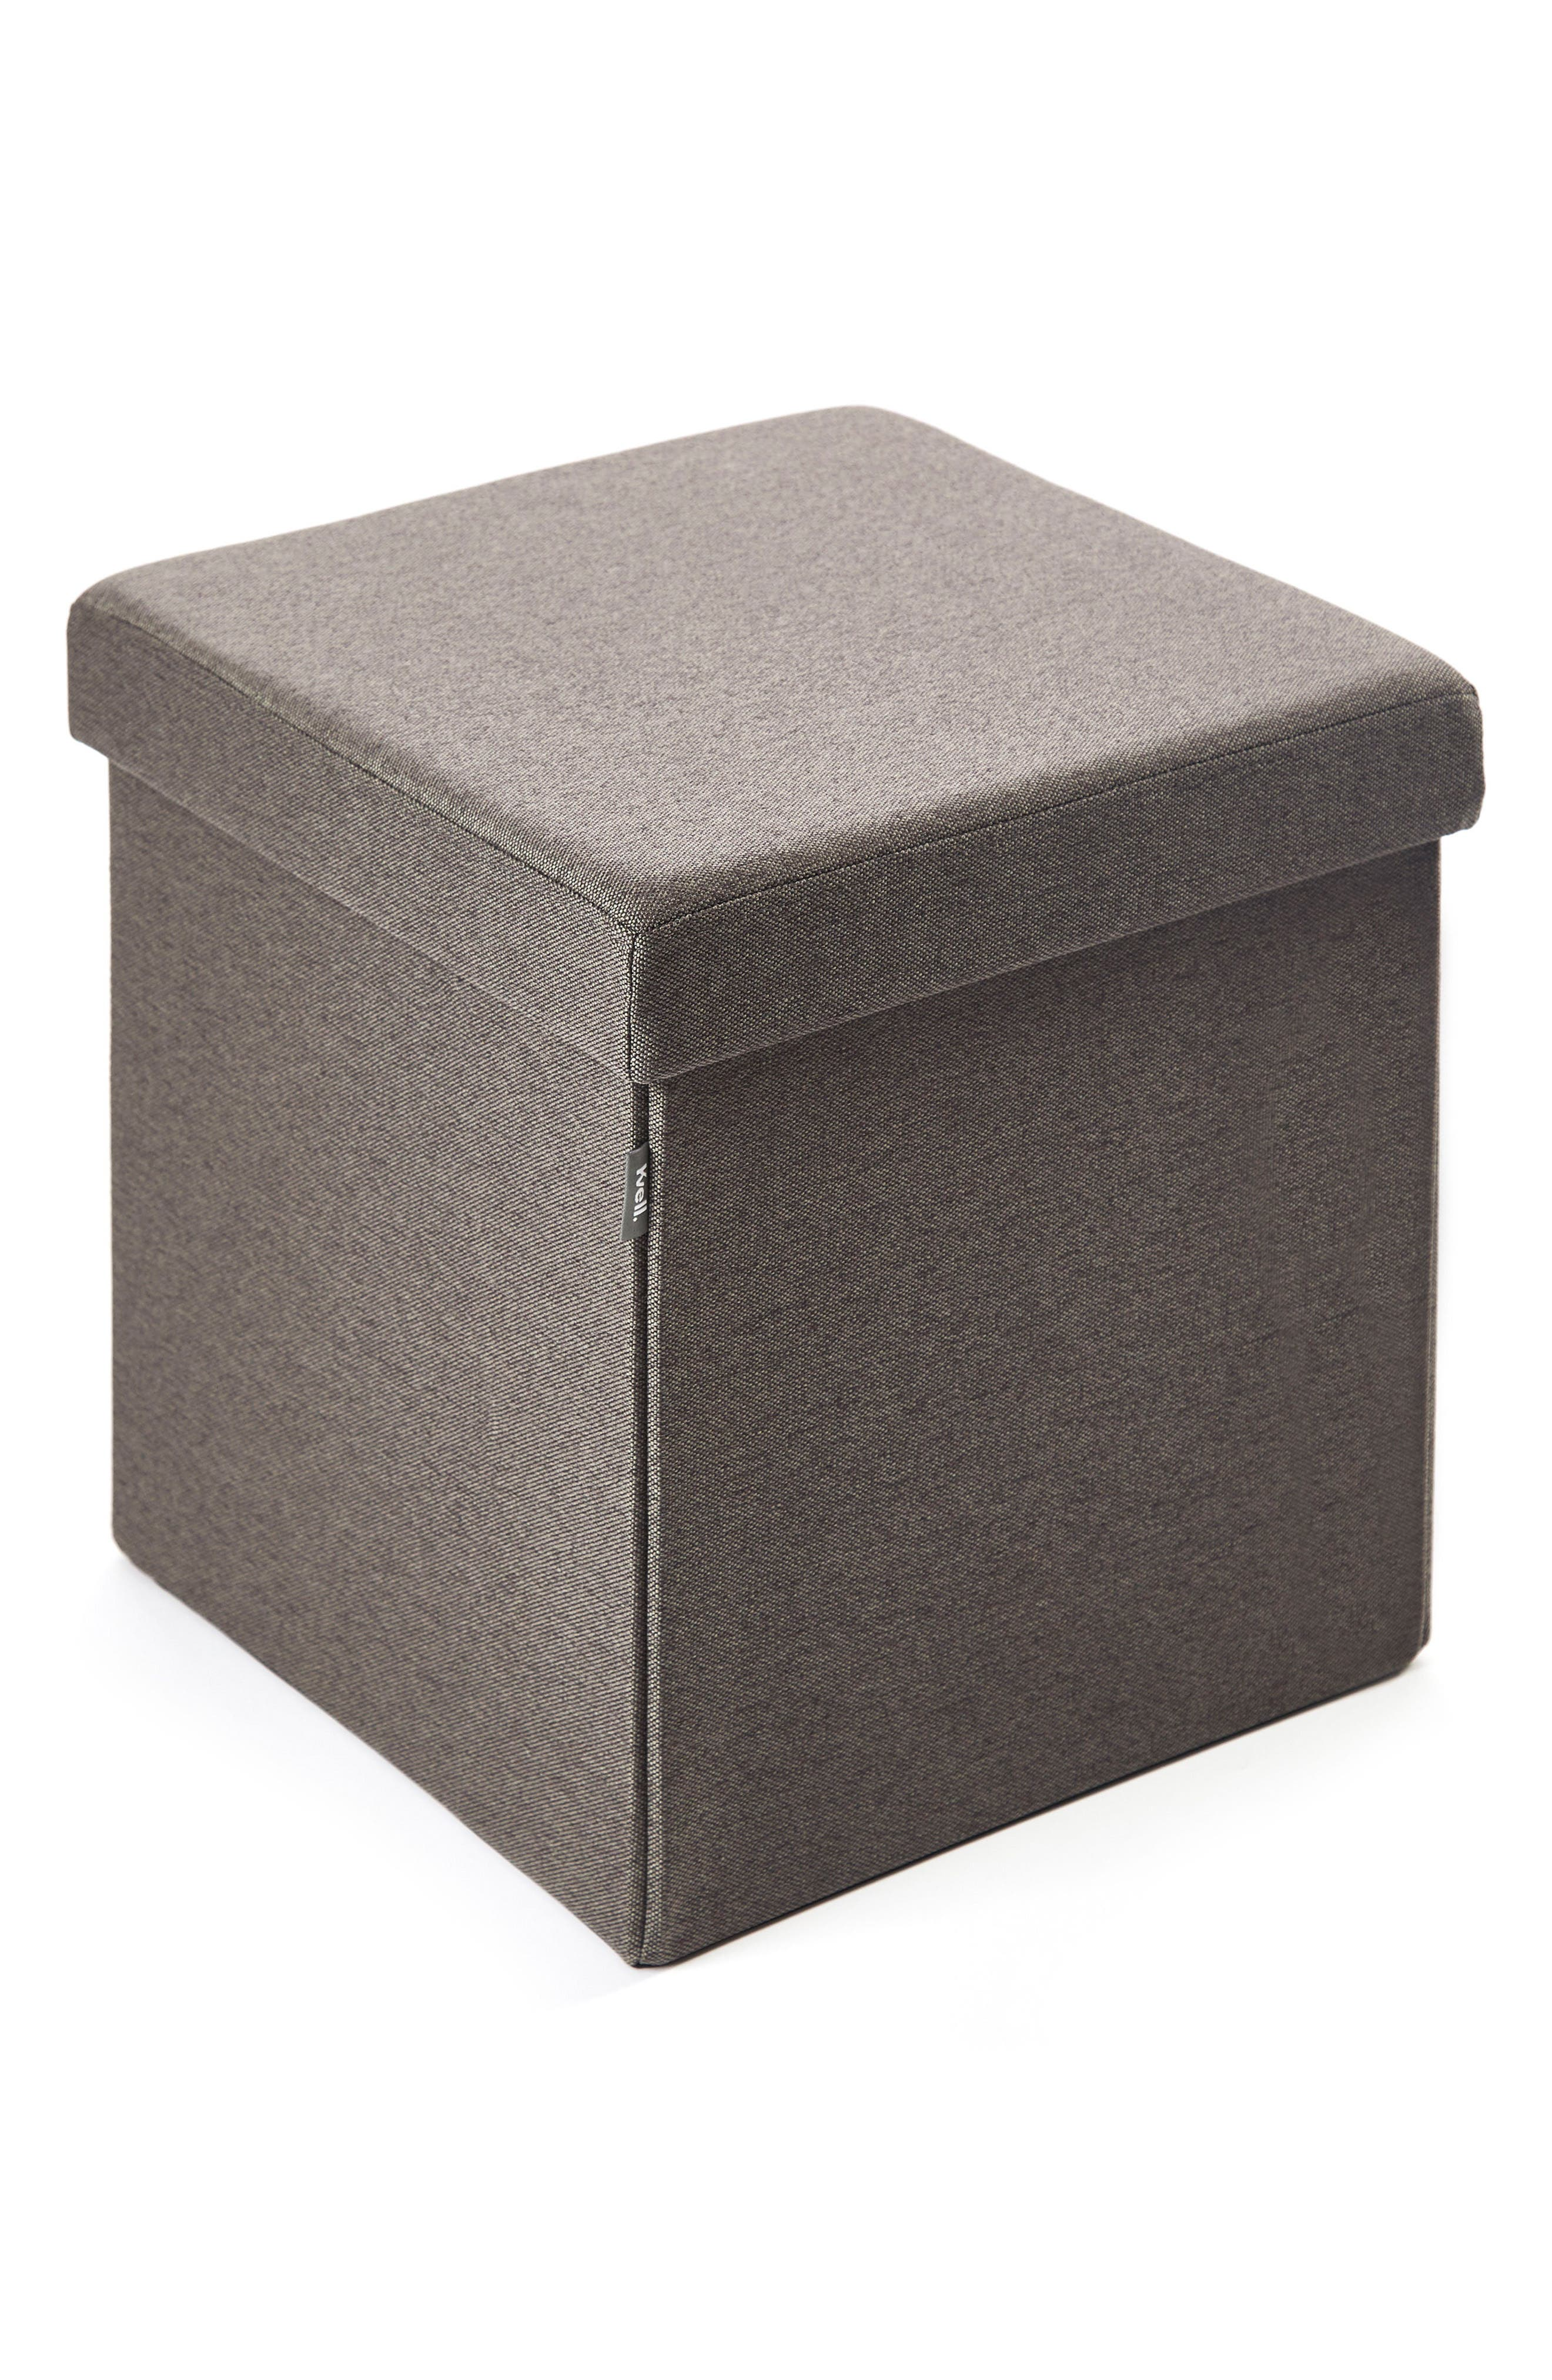 Kube Collapsible Storage Ottoman,                         Main,                         color, MODEST GREY